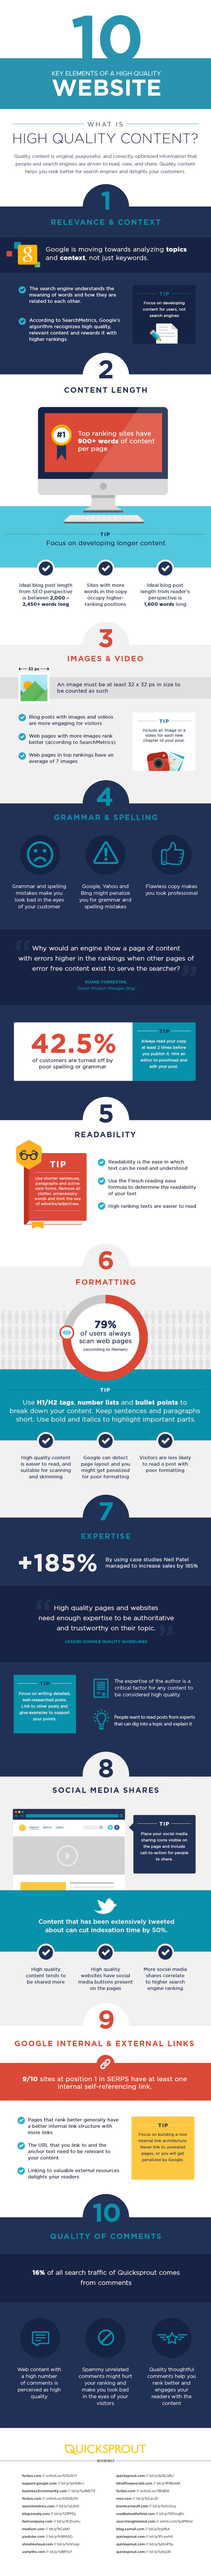 Blog Content Marketing: 10 crucial points to improve both Ranking on Search Engines and Impact on Users. Infographic